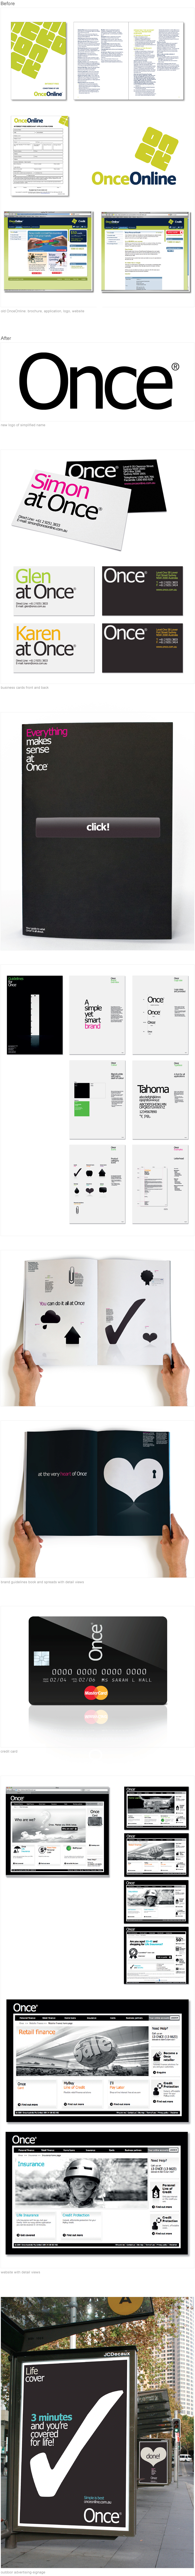 'Once' branding and design